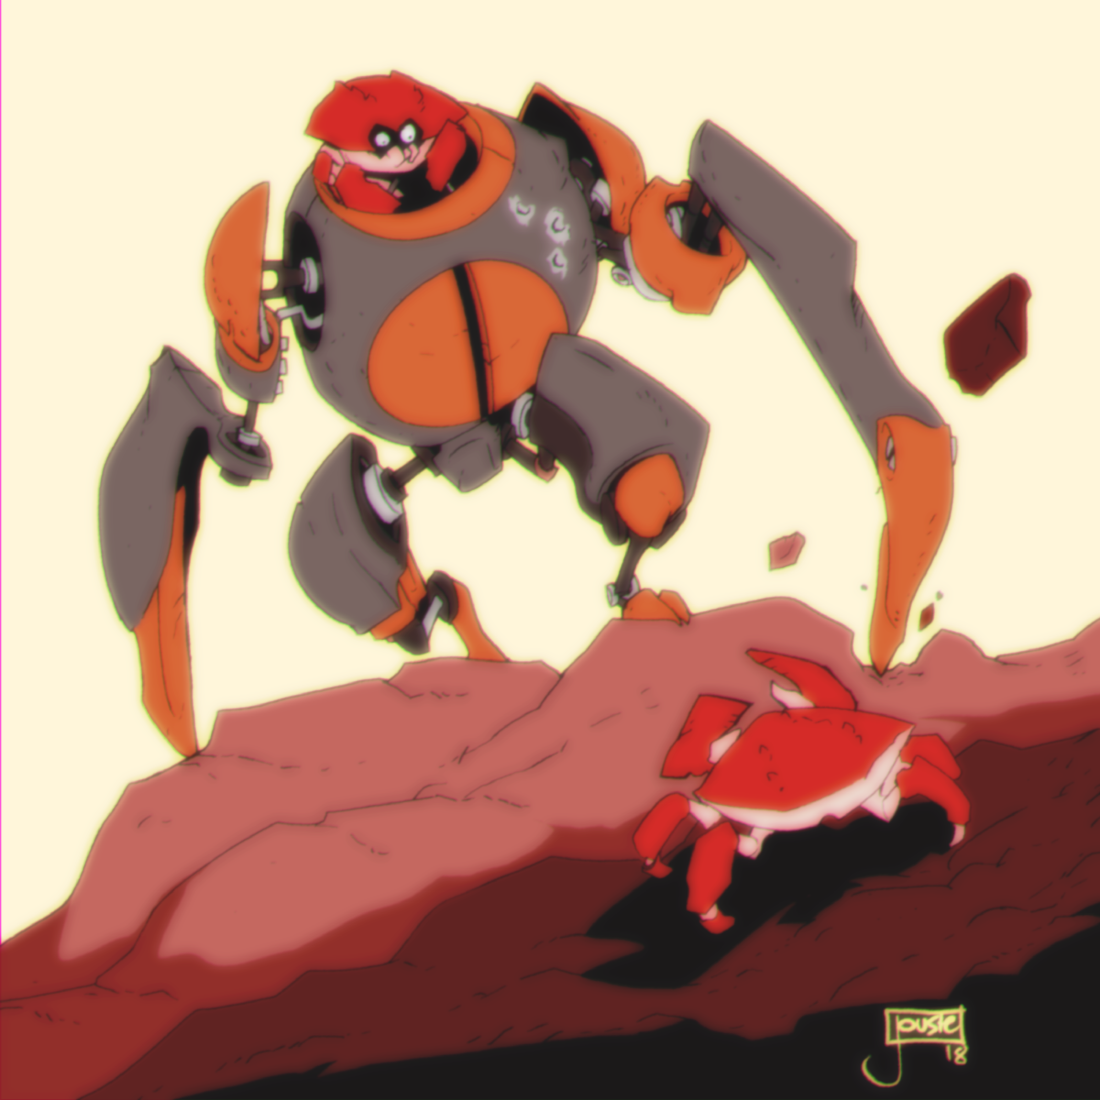 Crabulon fights regular crab